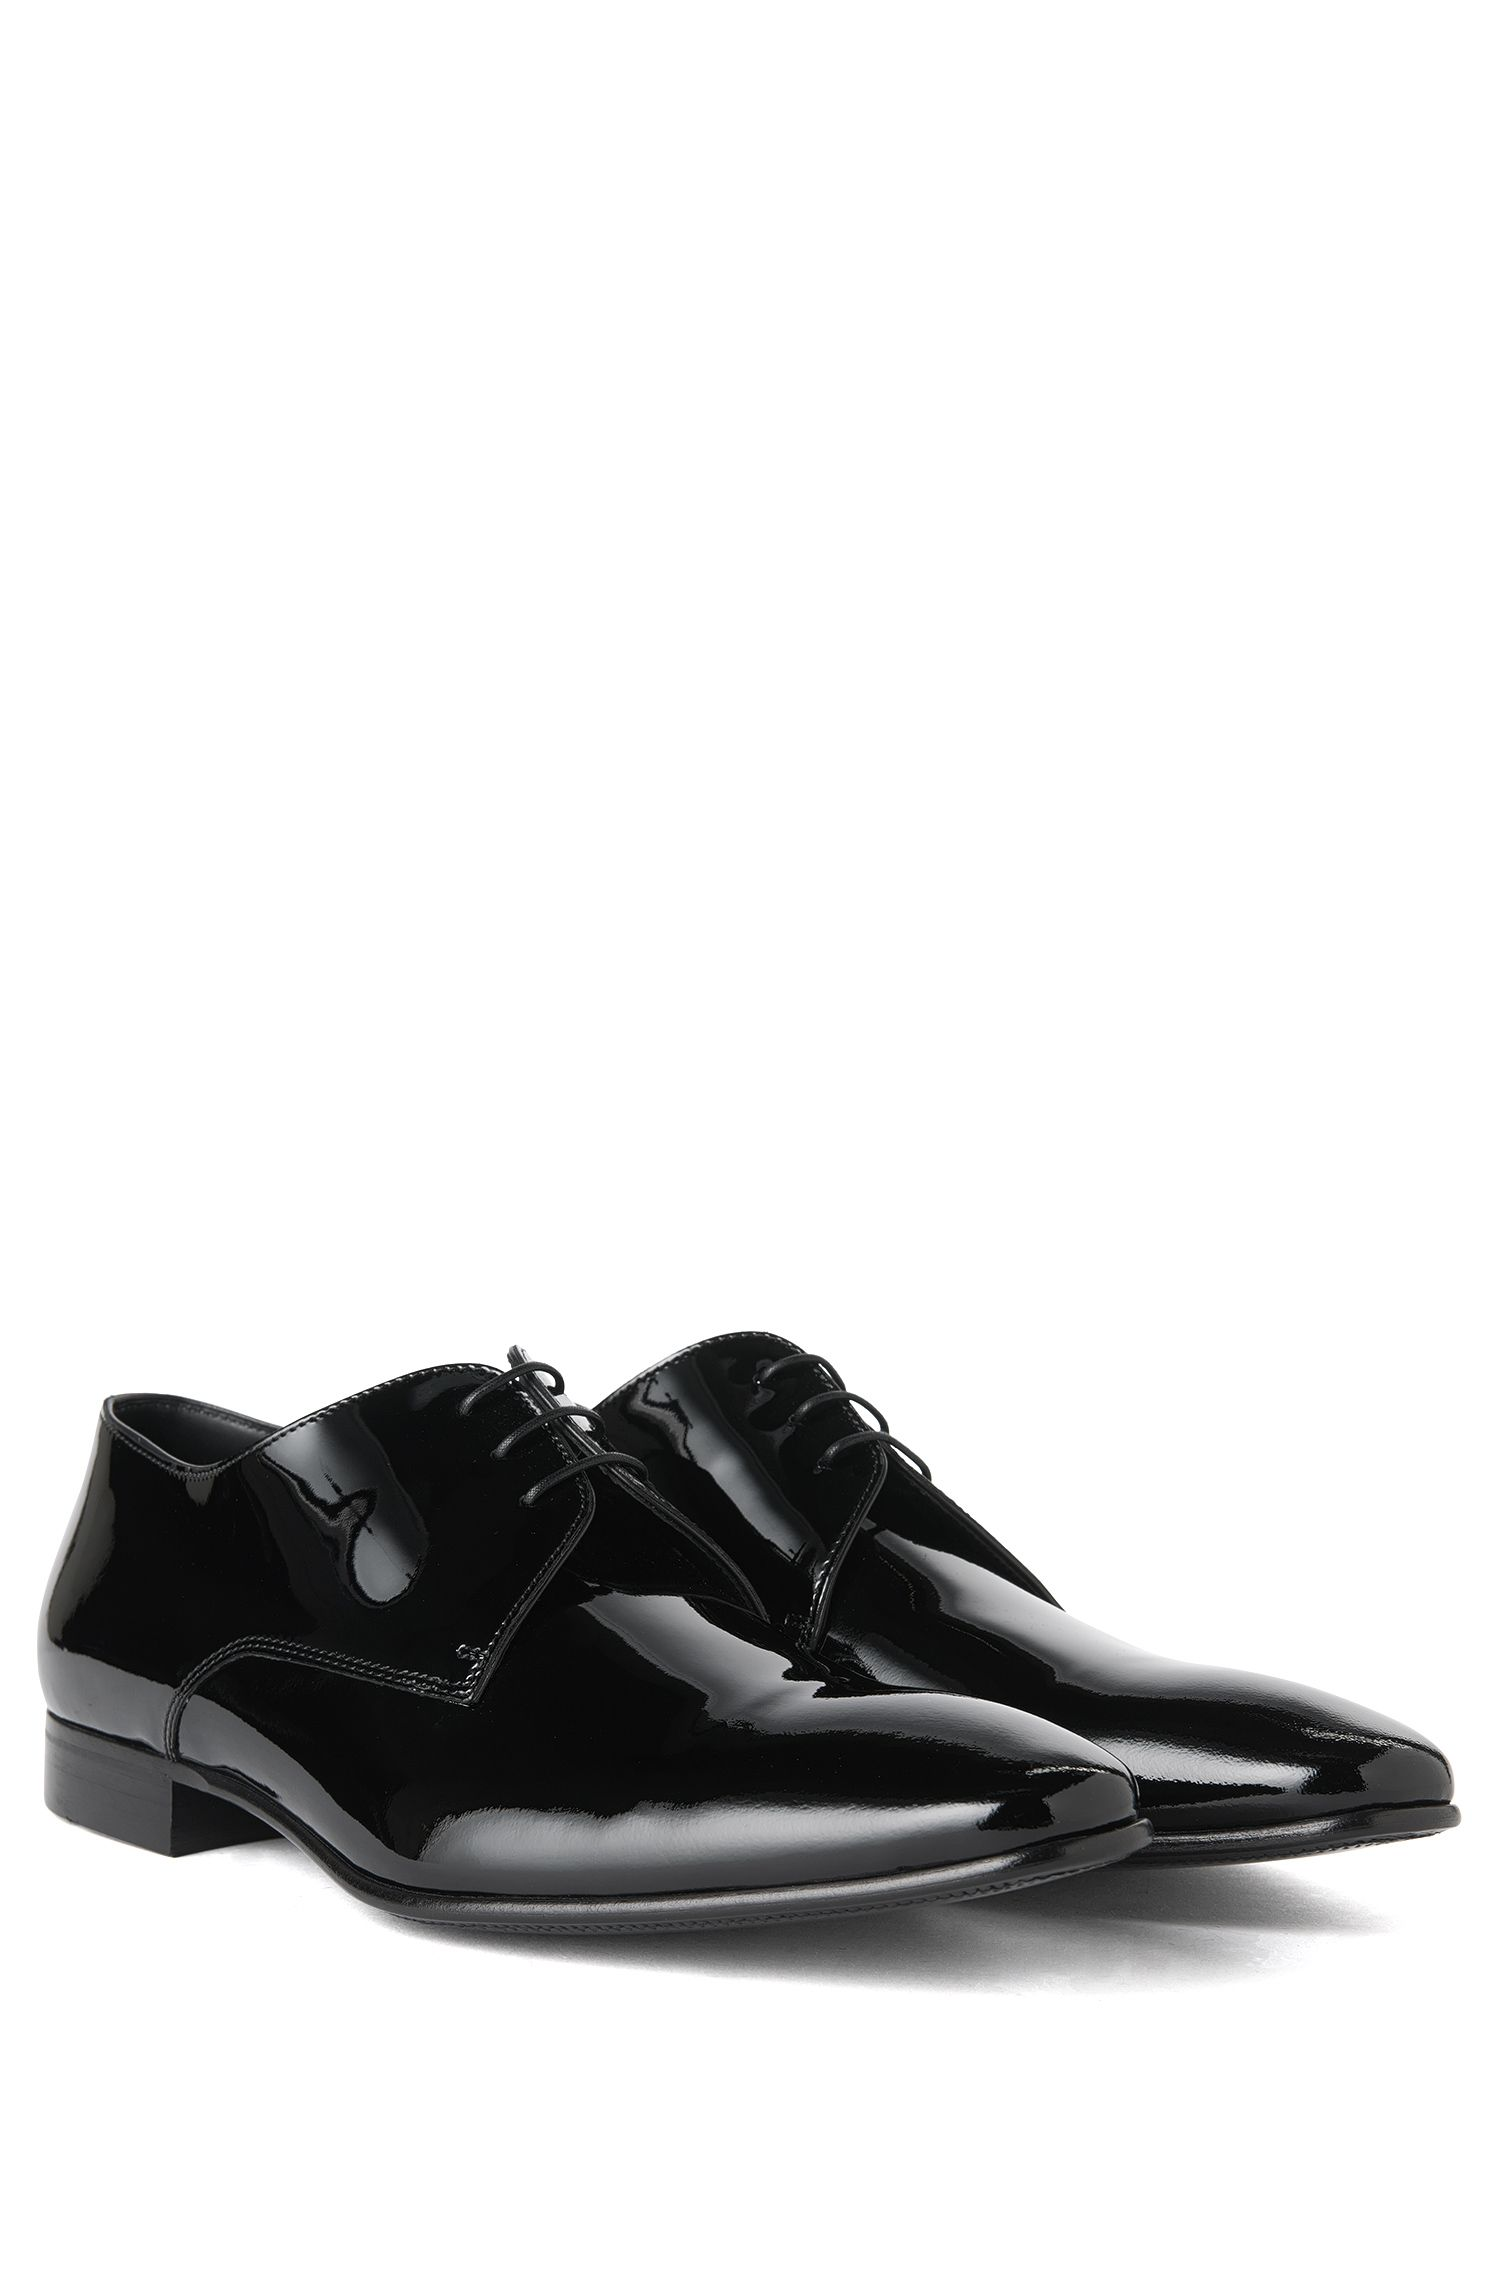 Italian Patent Leather Derby Tuxedo Shoe | Cristallo